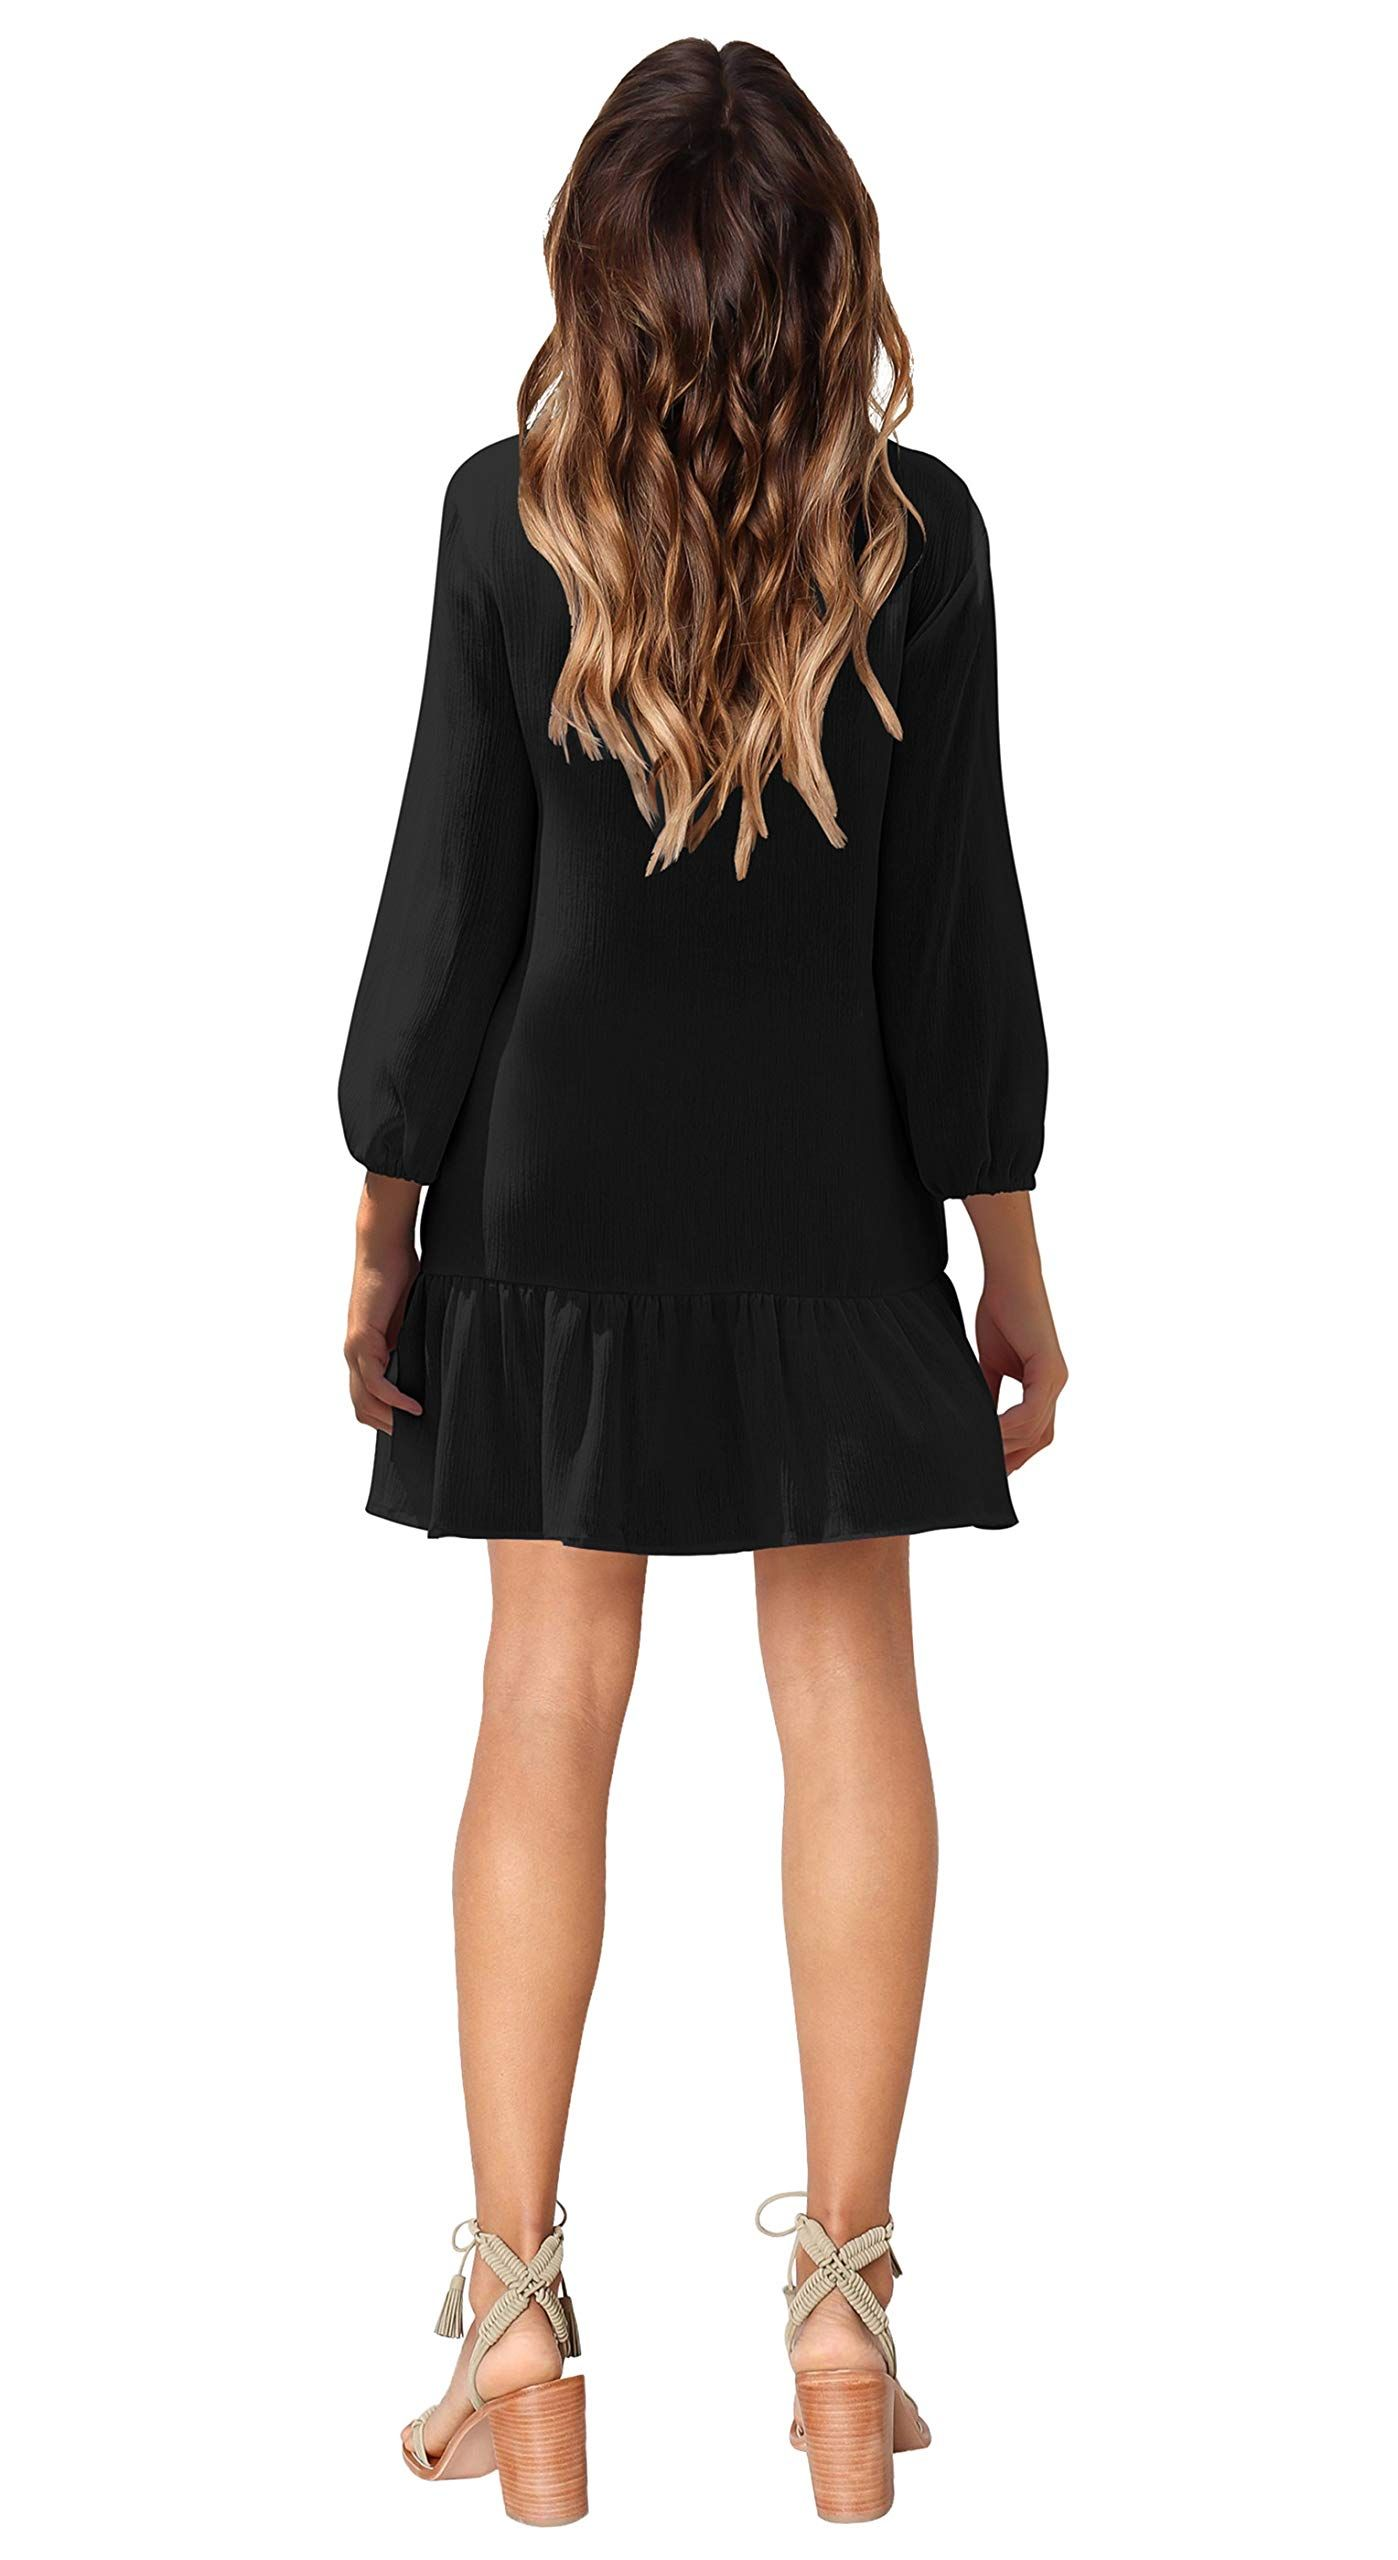 0c7edca1fc8 Zanuce Women 3/4 Sleeve V Neck Button Down Shift Dress Casual Ruffle Tunic  DressBlackSmall *** See this great product. (This is an affiliate link) #  ...